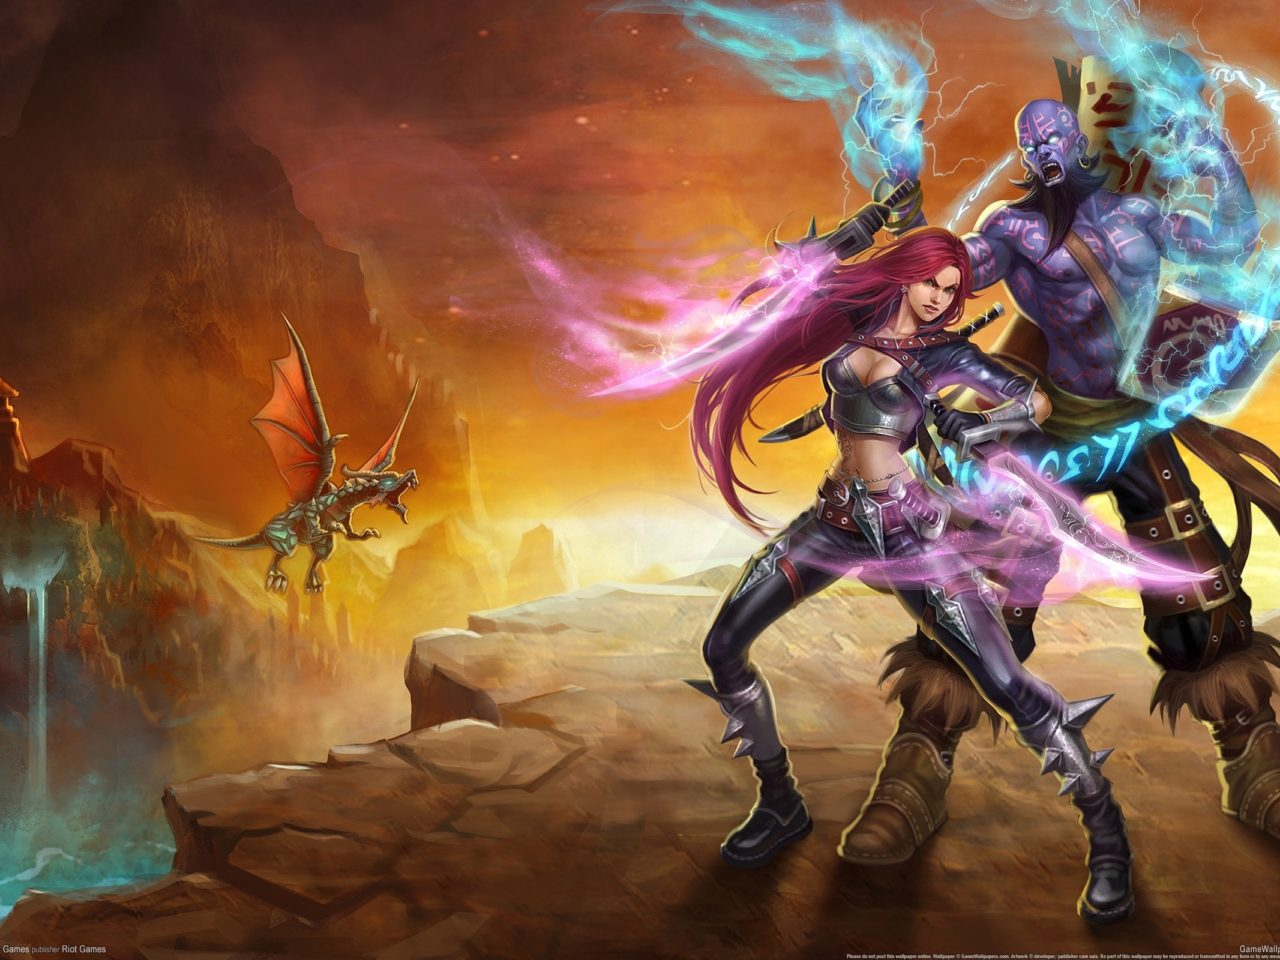 How To Get Dynamic Wallpapers Iphone X League Of Legends Character Janna And Exorcist Warriors